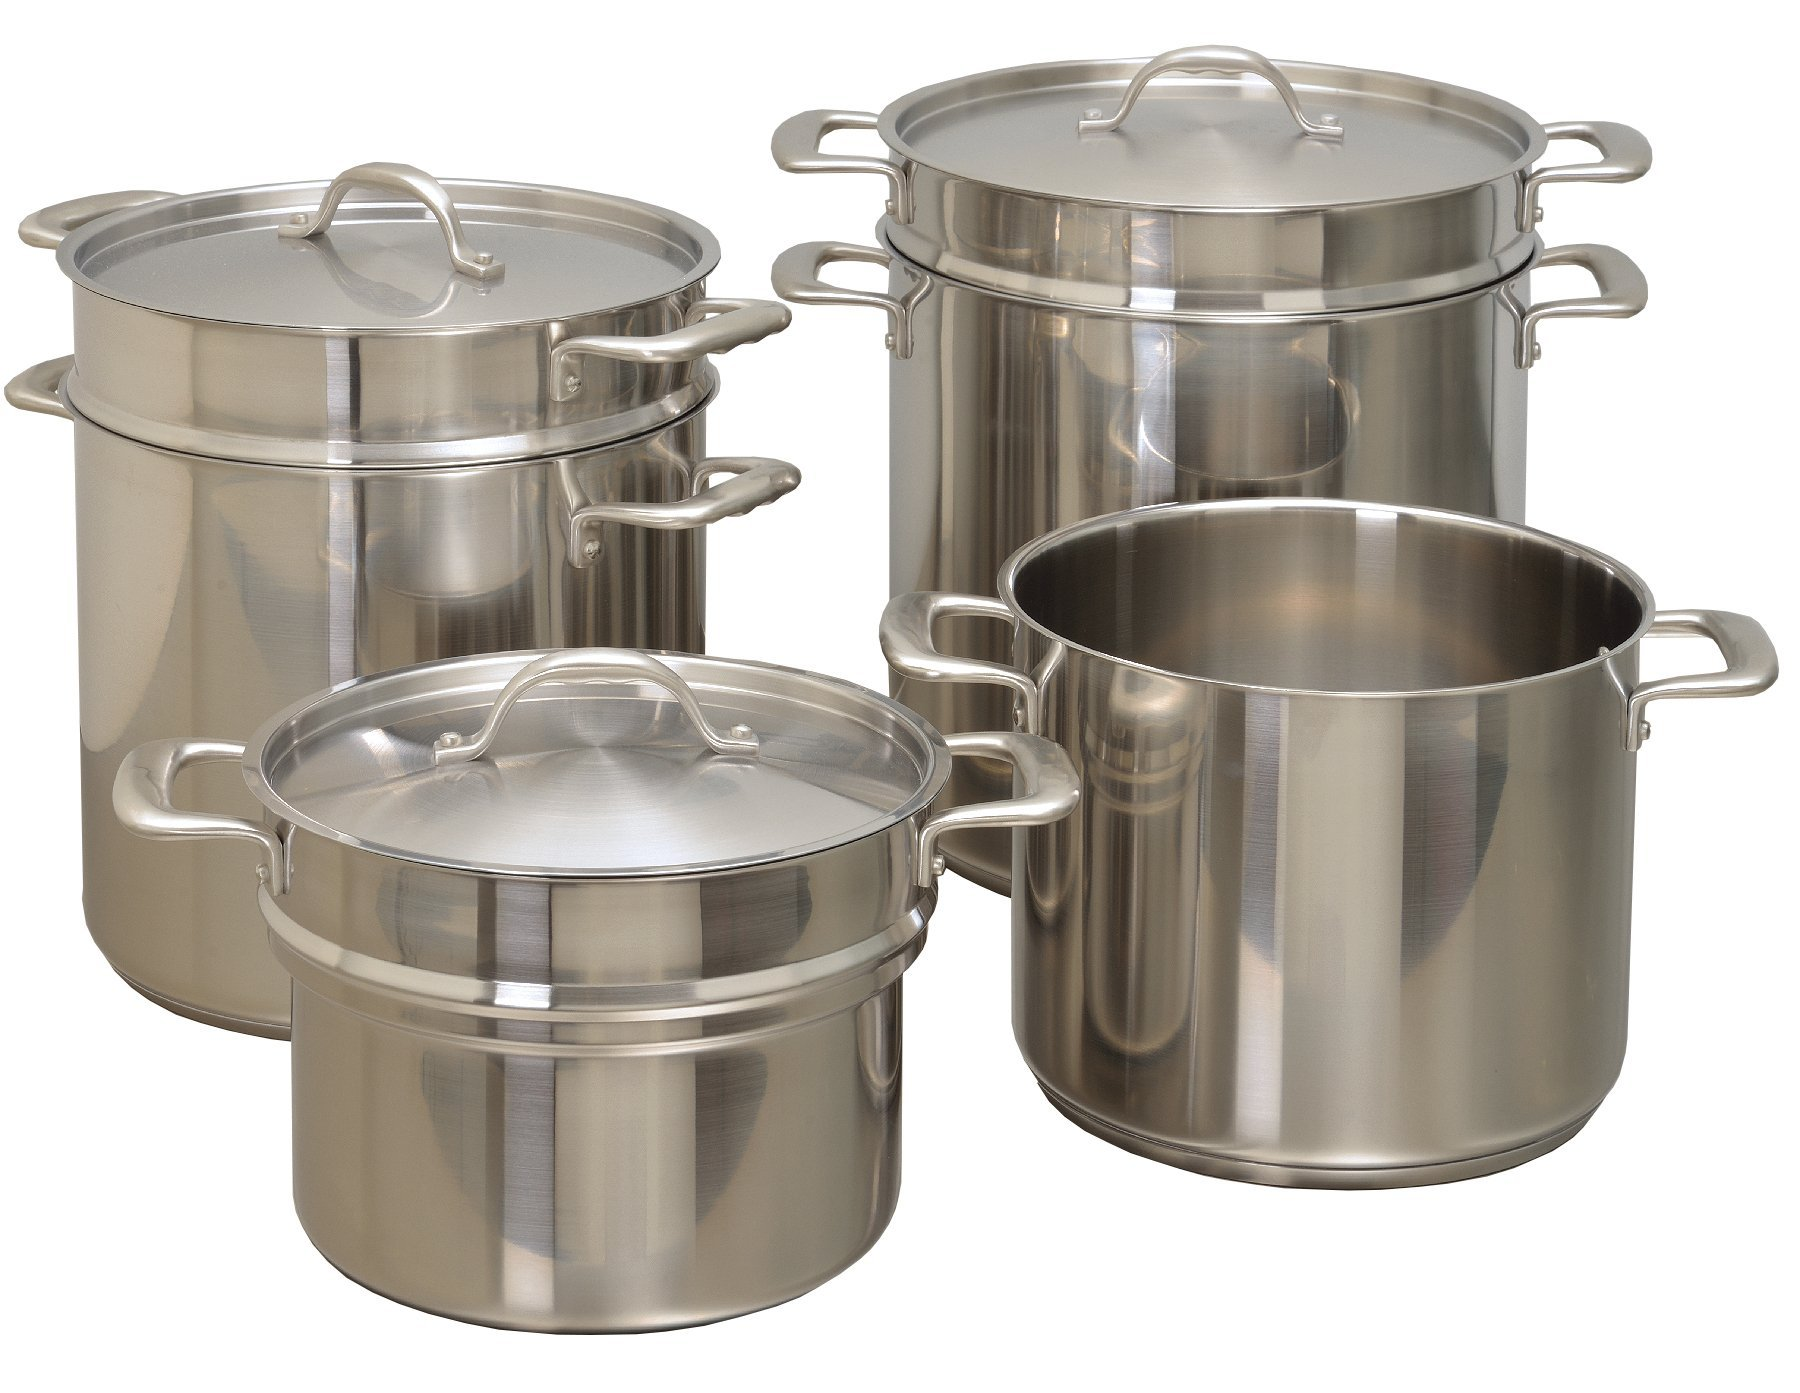 Update International CDB-16 Induction-Ready Double Boiler and Cover, 16 Qt, Stainless Steel